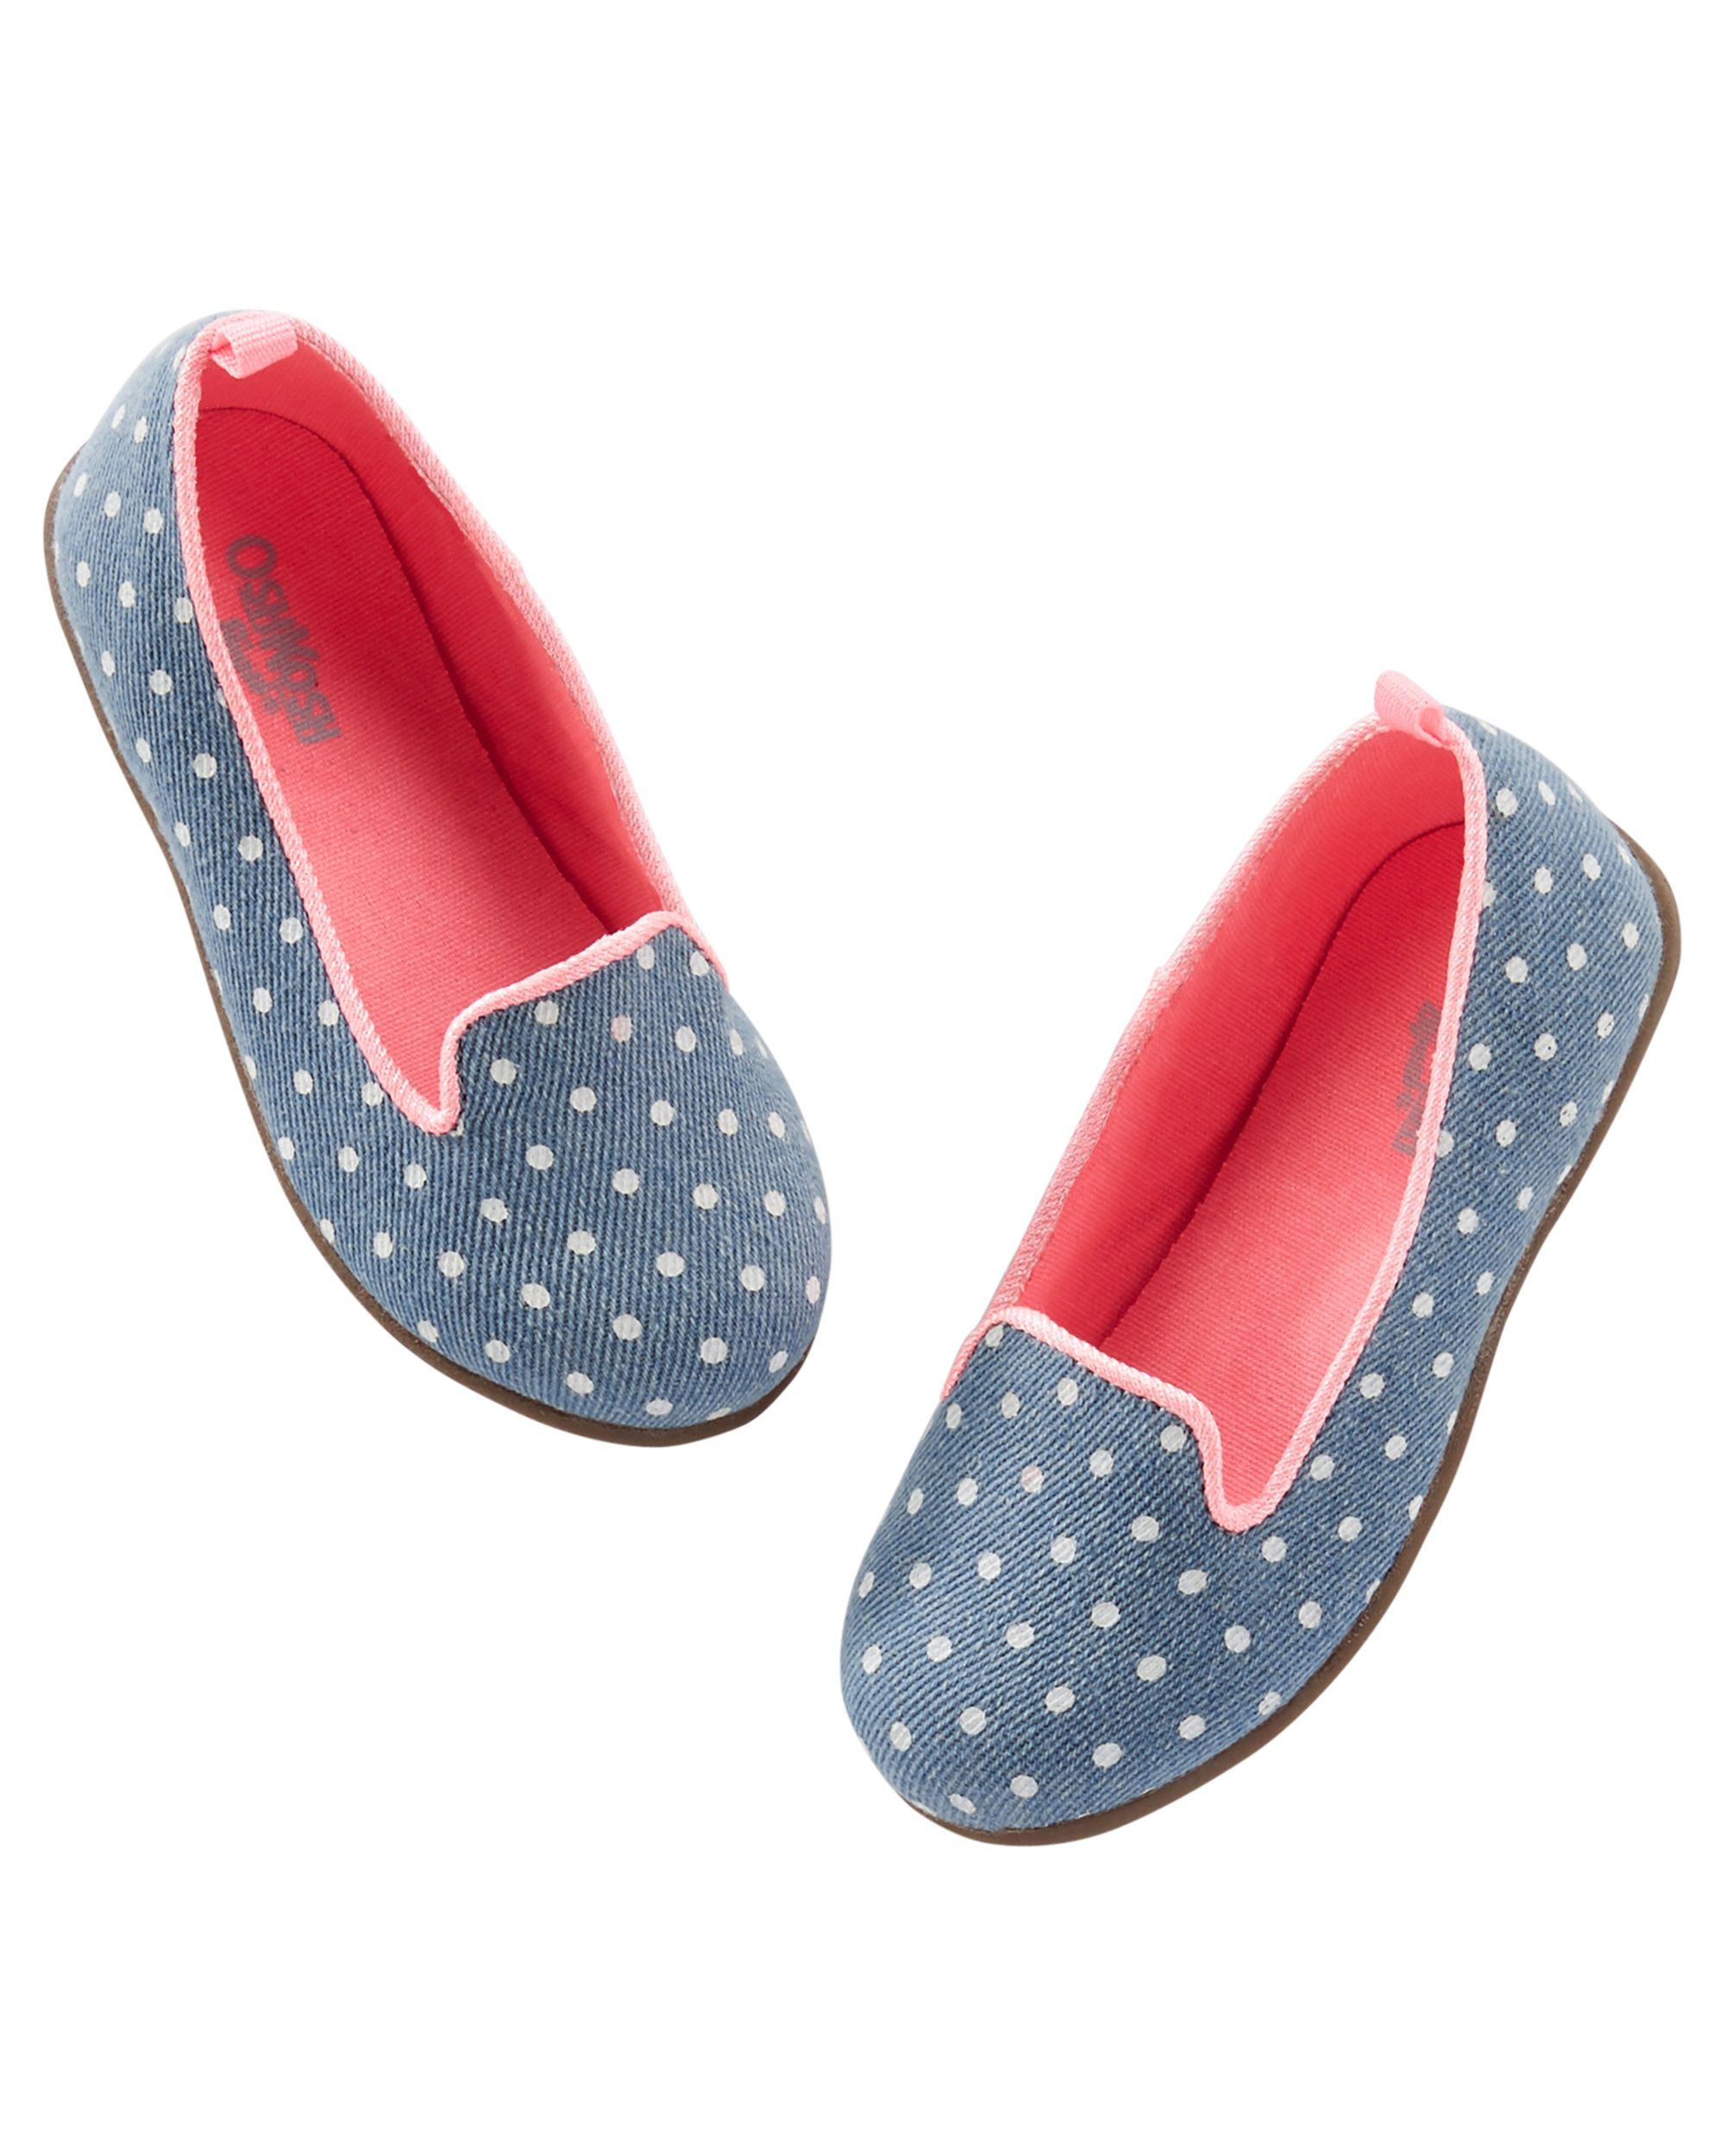 caa8610113cc Toddler Girl OshKosh Polka Dot Loafers from OshKosh B gosh. Shop clothing    accessories from a trusted name in kids